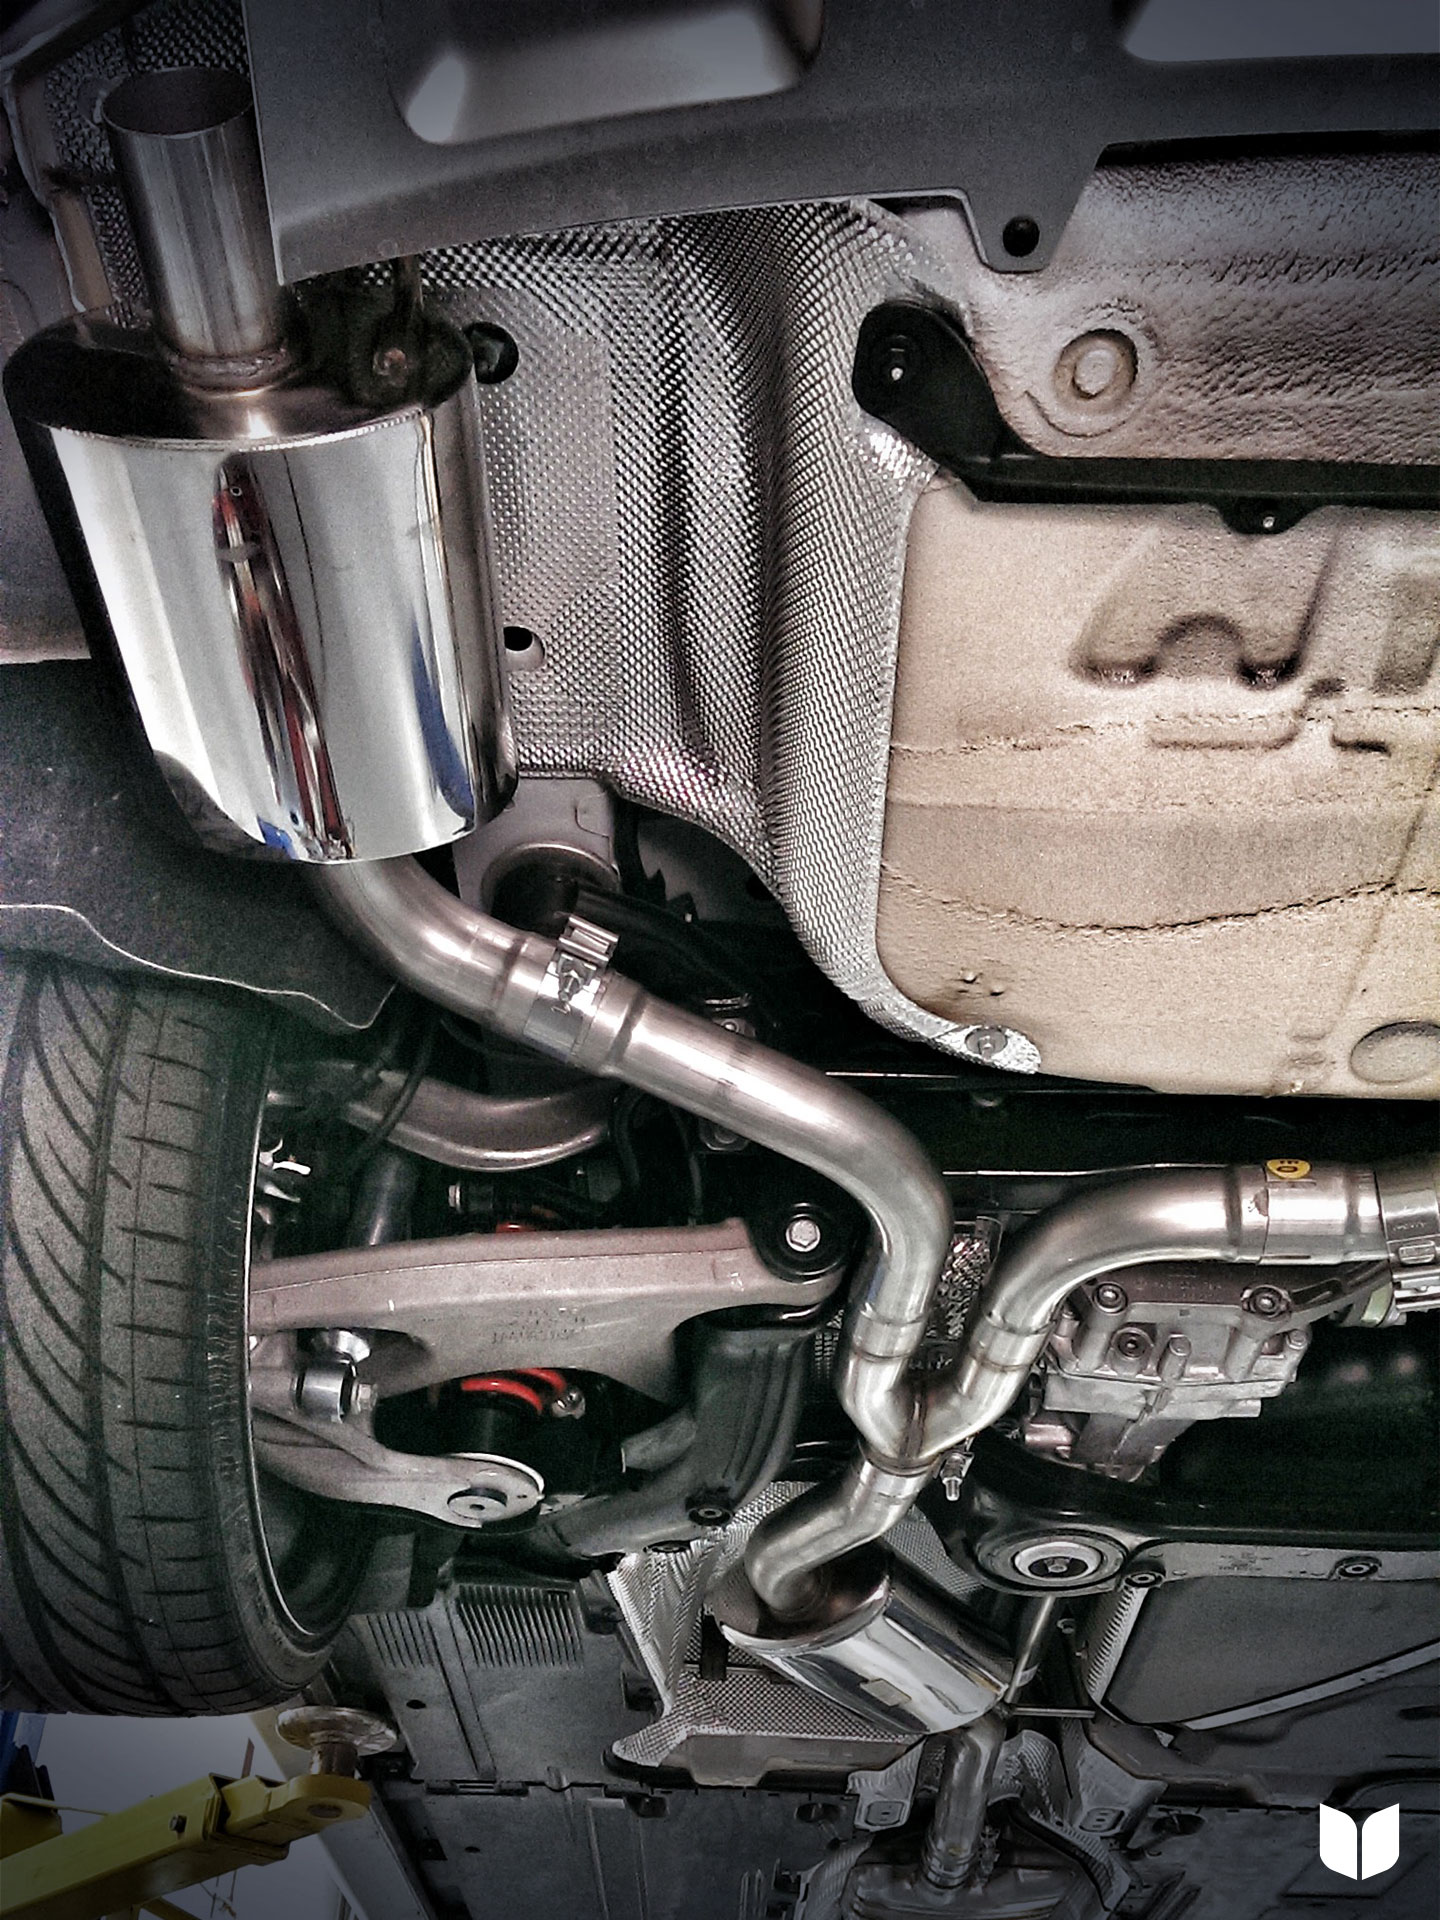 AWE Cat Back Exhaust, installed on car